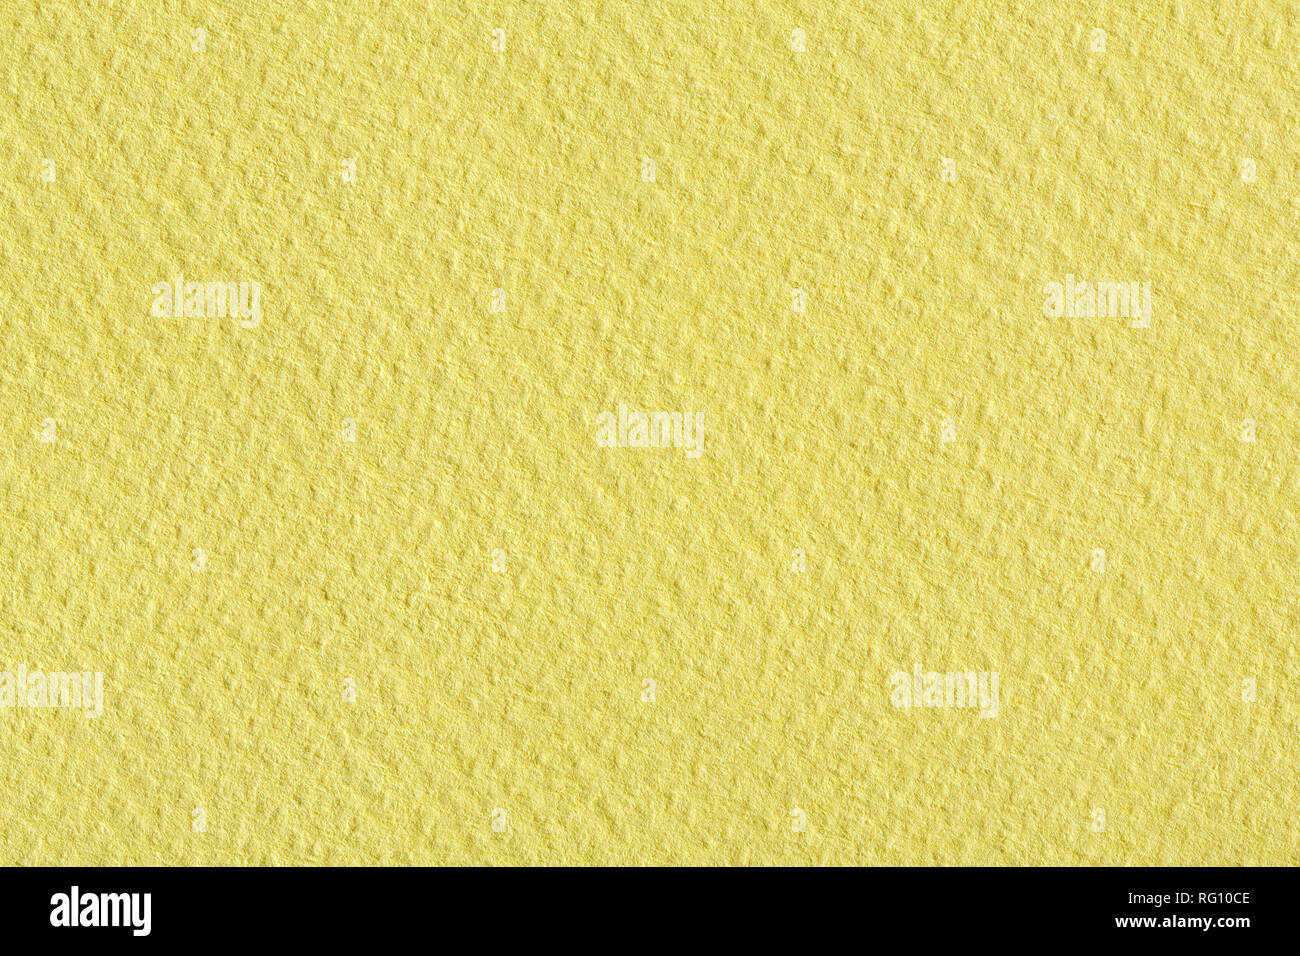 Texture of yellow paper for your unique project.. - Stock Image